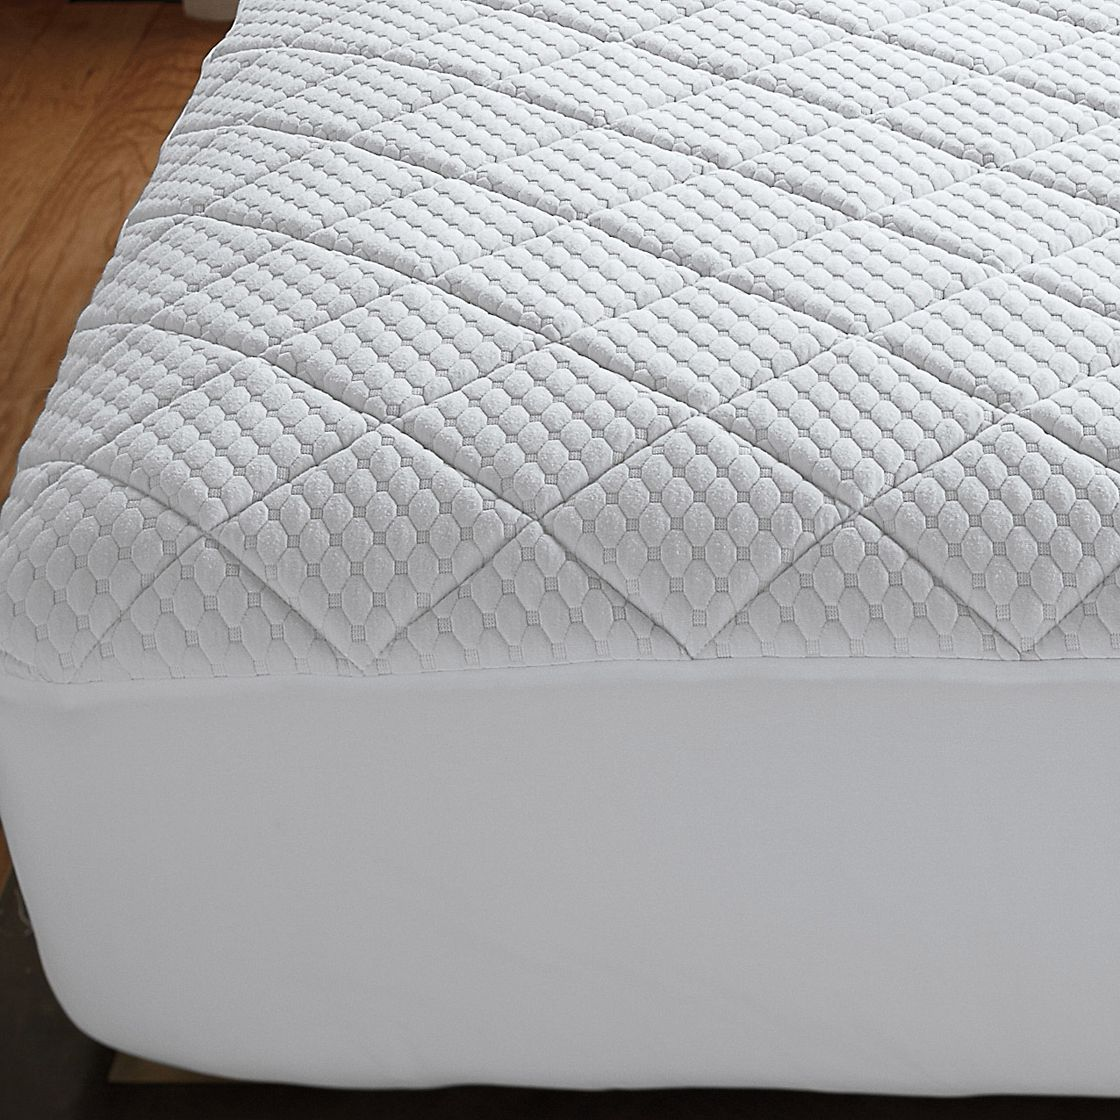 Comfort Cushion Memory Foam Mattress Pad The Company Store